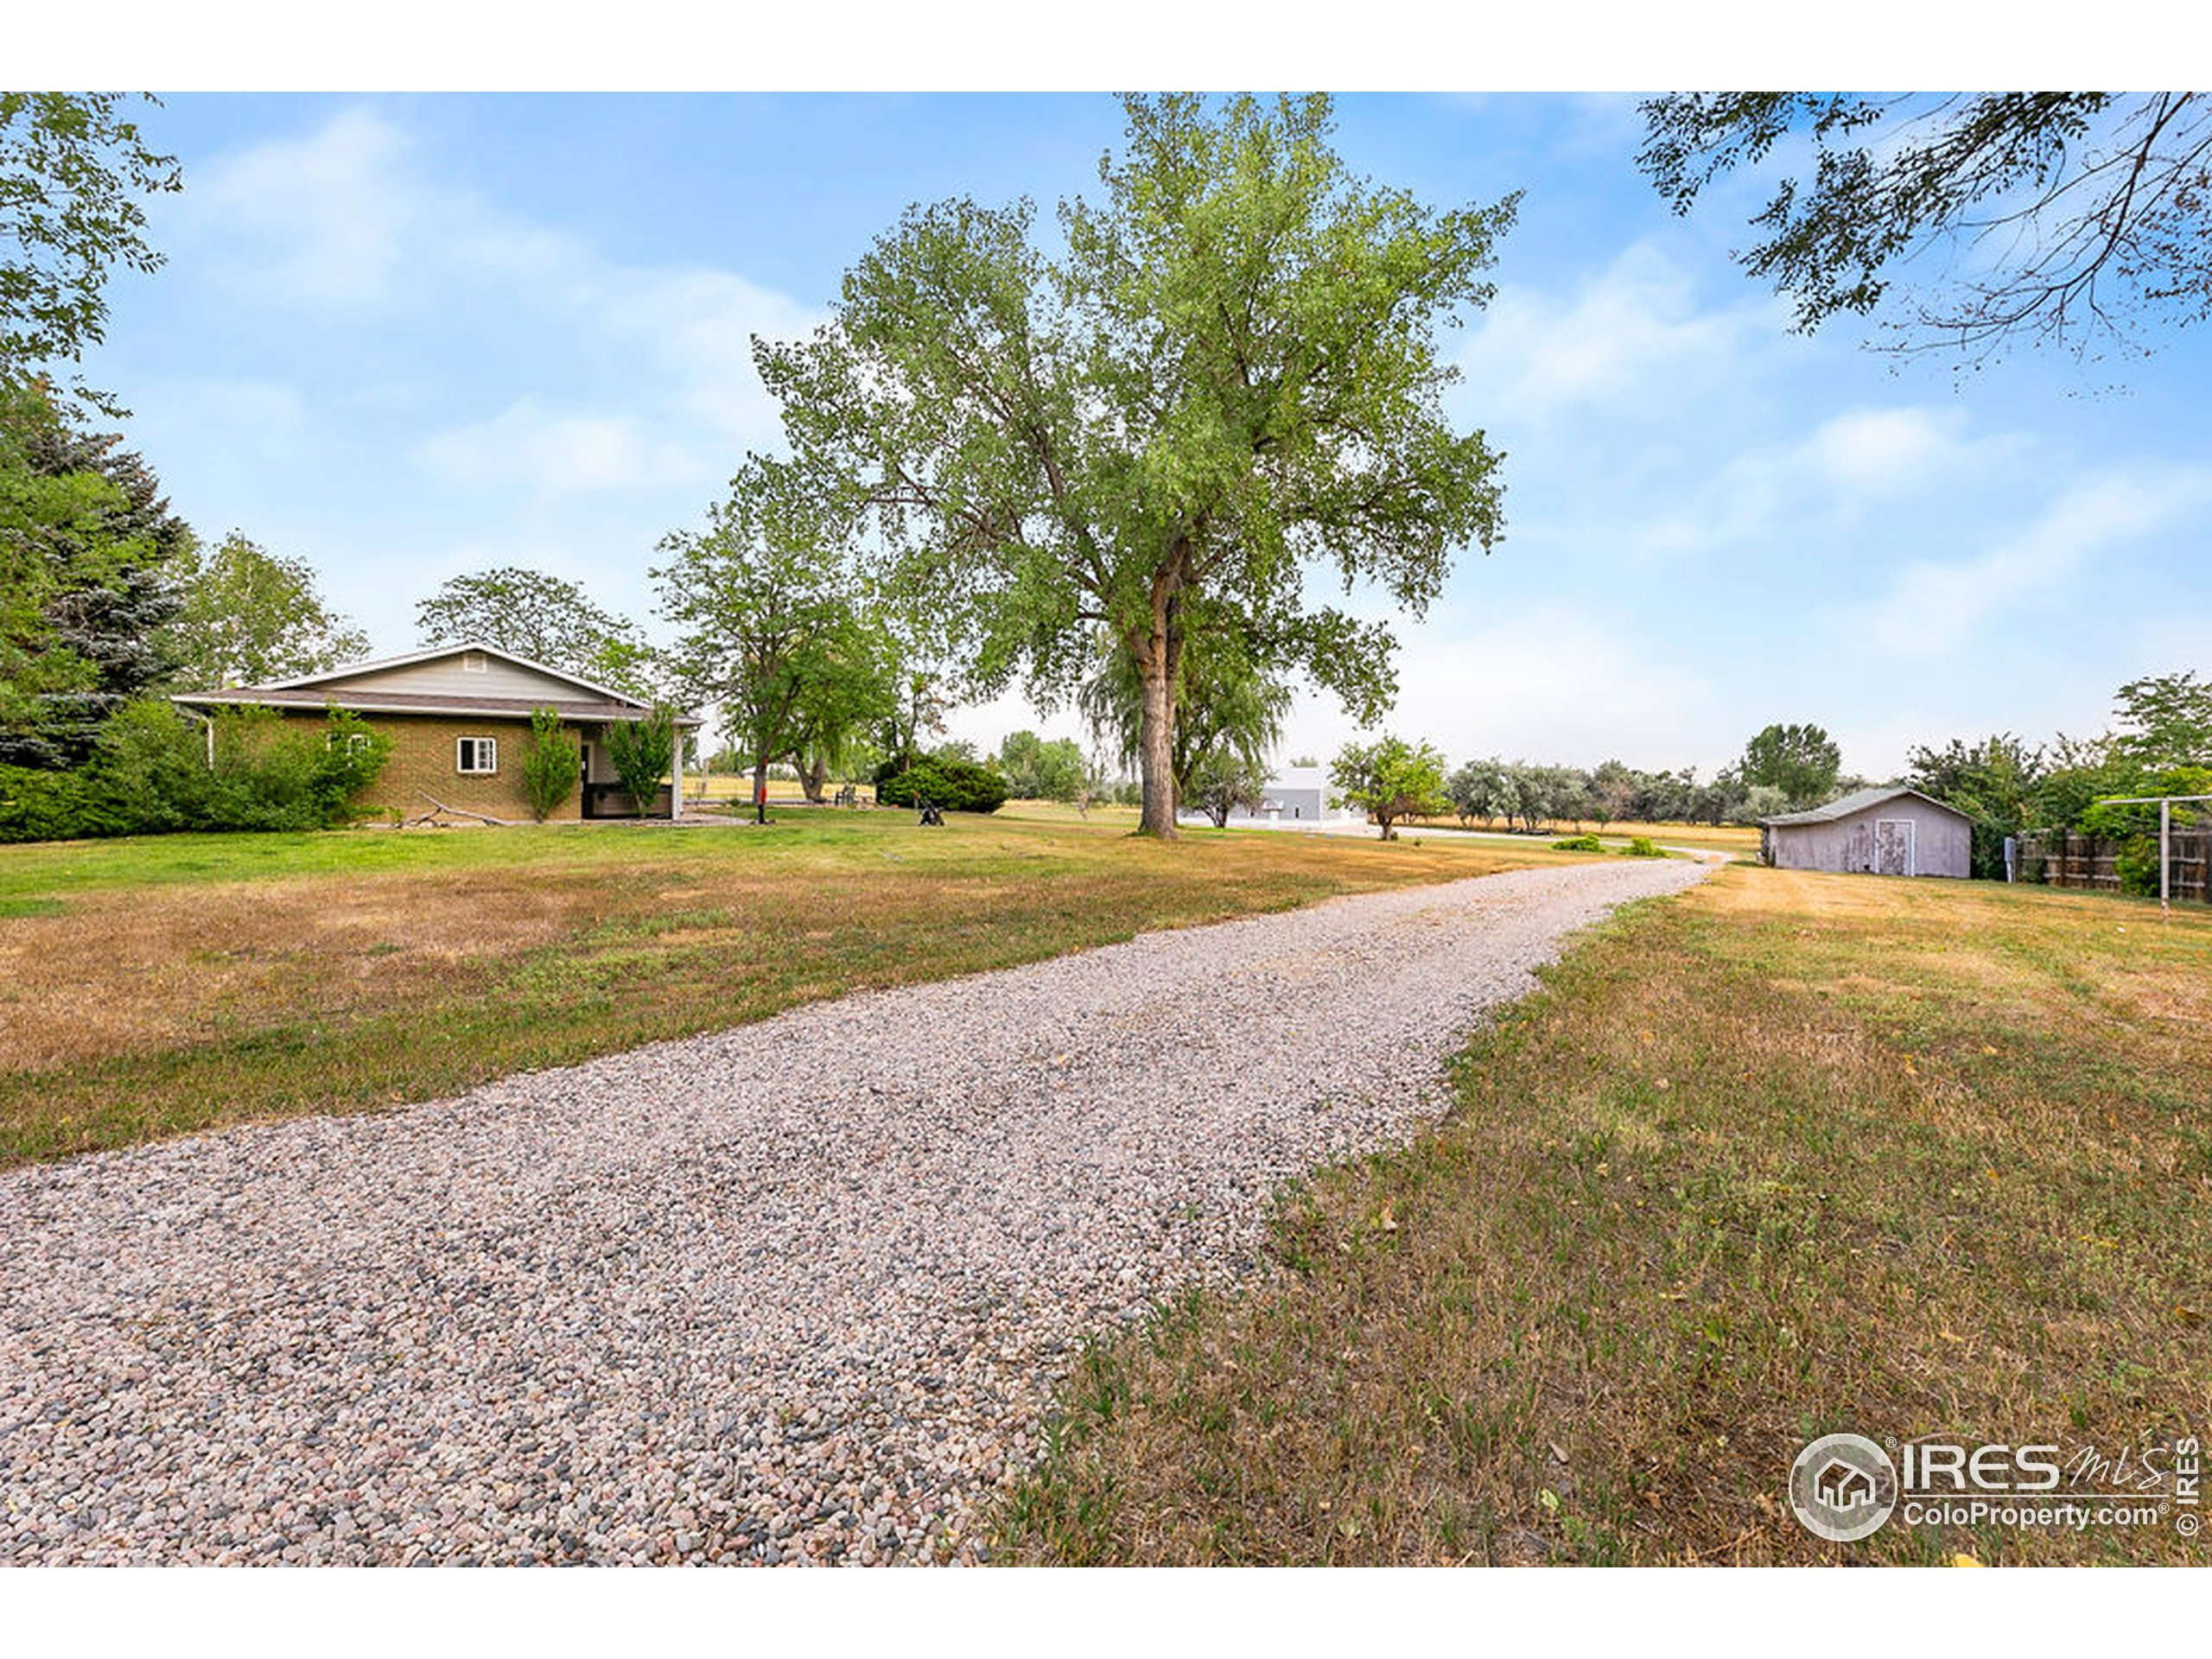 Country Lane & well maintained road to shop